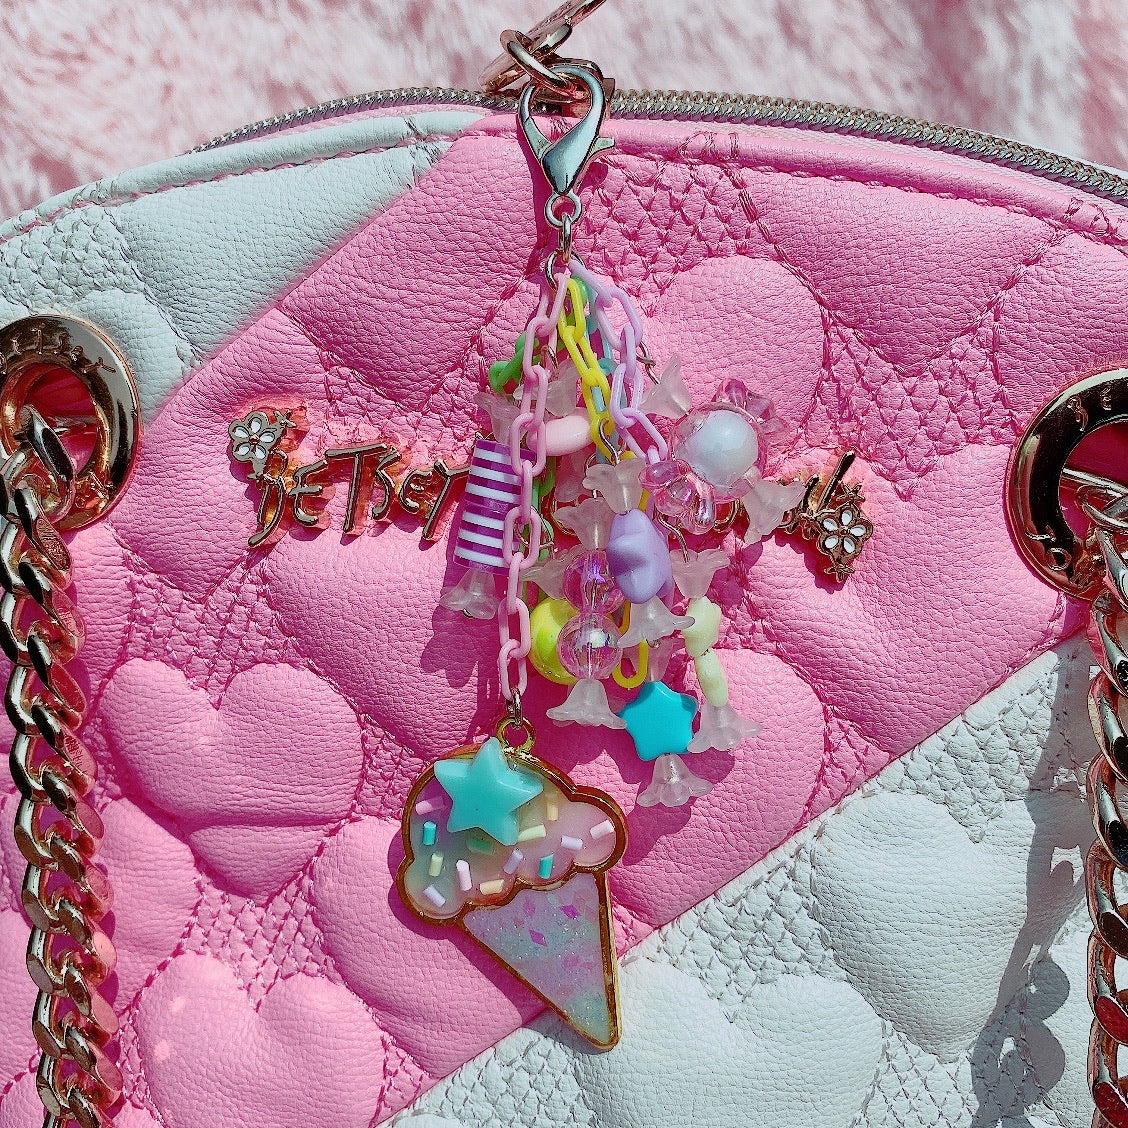 Kawaii Rainbow Ice Cream  Candy Charm Bag / phone charm